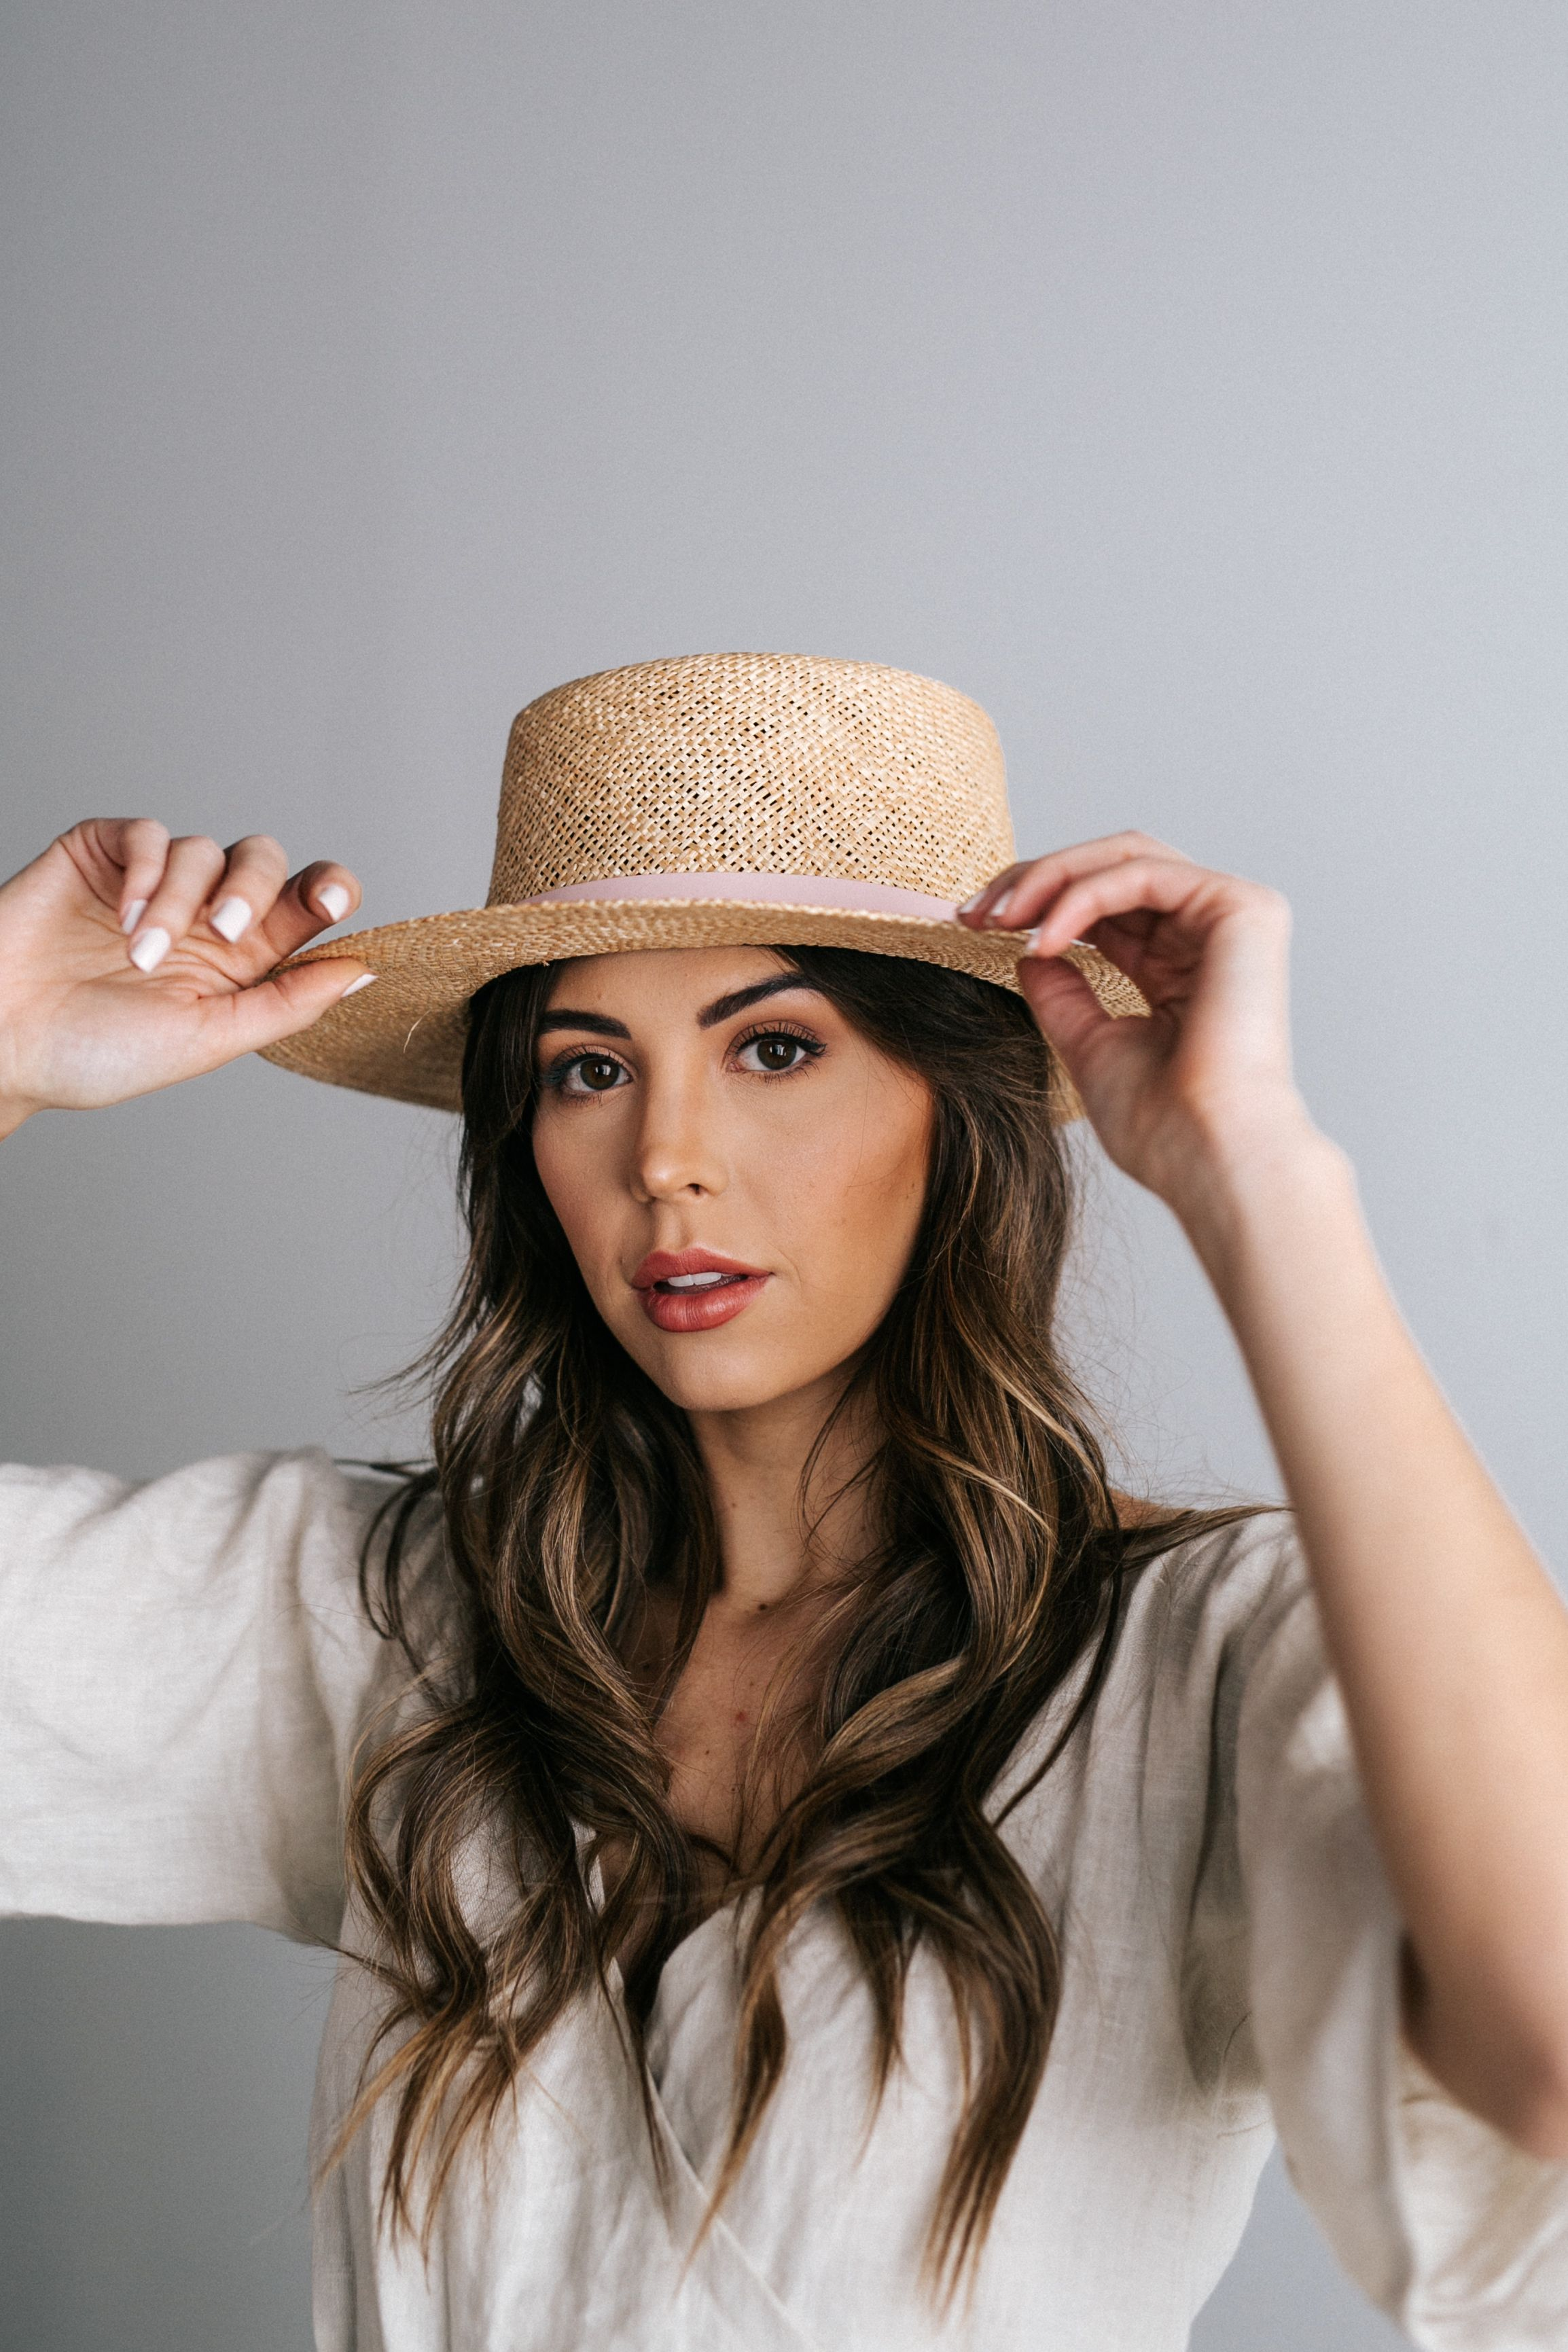 70c46635 Our straw hat collection consists of a wide range of women's hat styles  including floppy sun hats, wide brim straw hats, short brim straw hats, ...